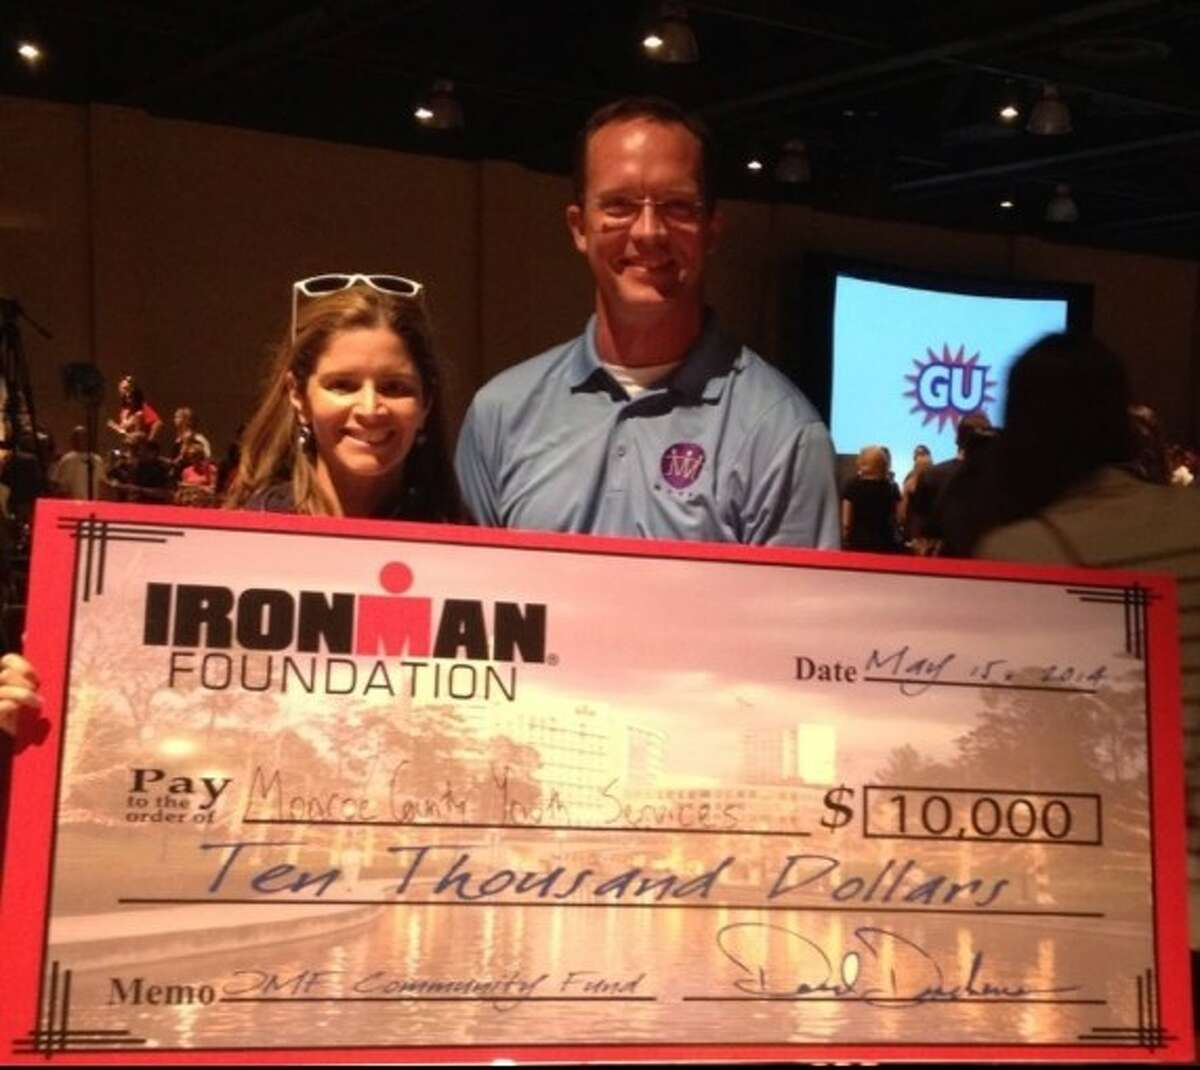 Montgomery County Youth Services (MCYS) recently received a grant from The Ironman Foundation Community Fund. The grant was awarded as part of a larger initiative of The Ironman Foundation to give back to The Woodlands Community; a total of $100,000 was contributed by the Foundation to area organizations as part of the 2014 Memorial Hermann Ironman Texas triathlon, presented by Waste Management, which took place on Saturday, May 16.